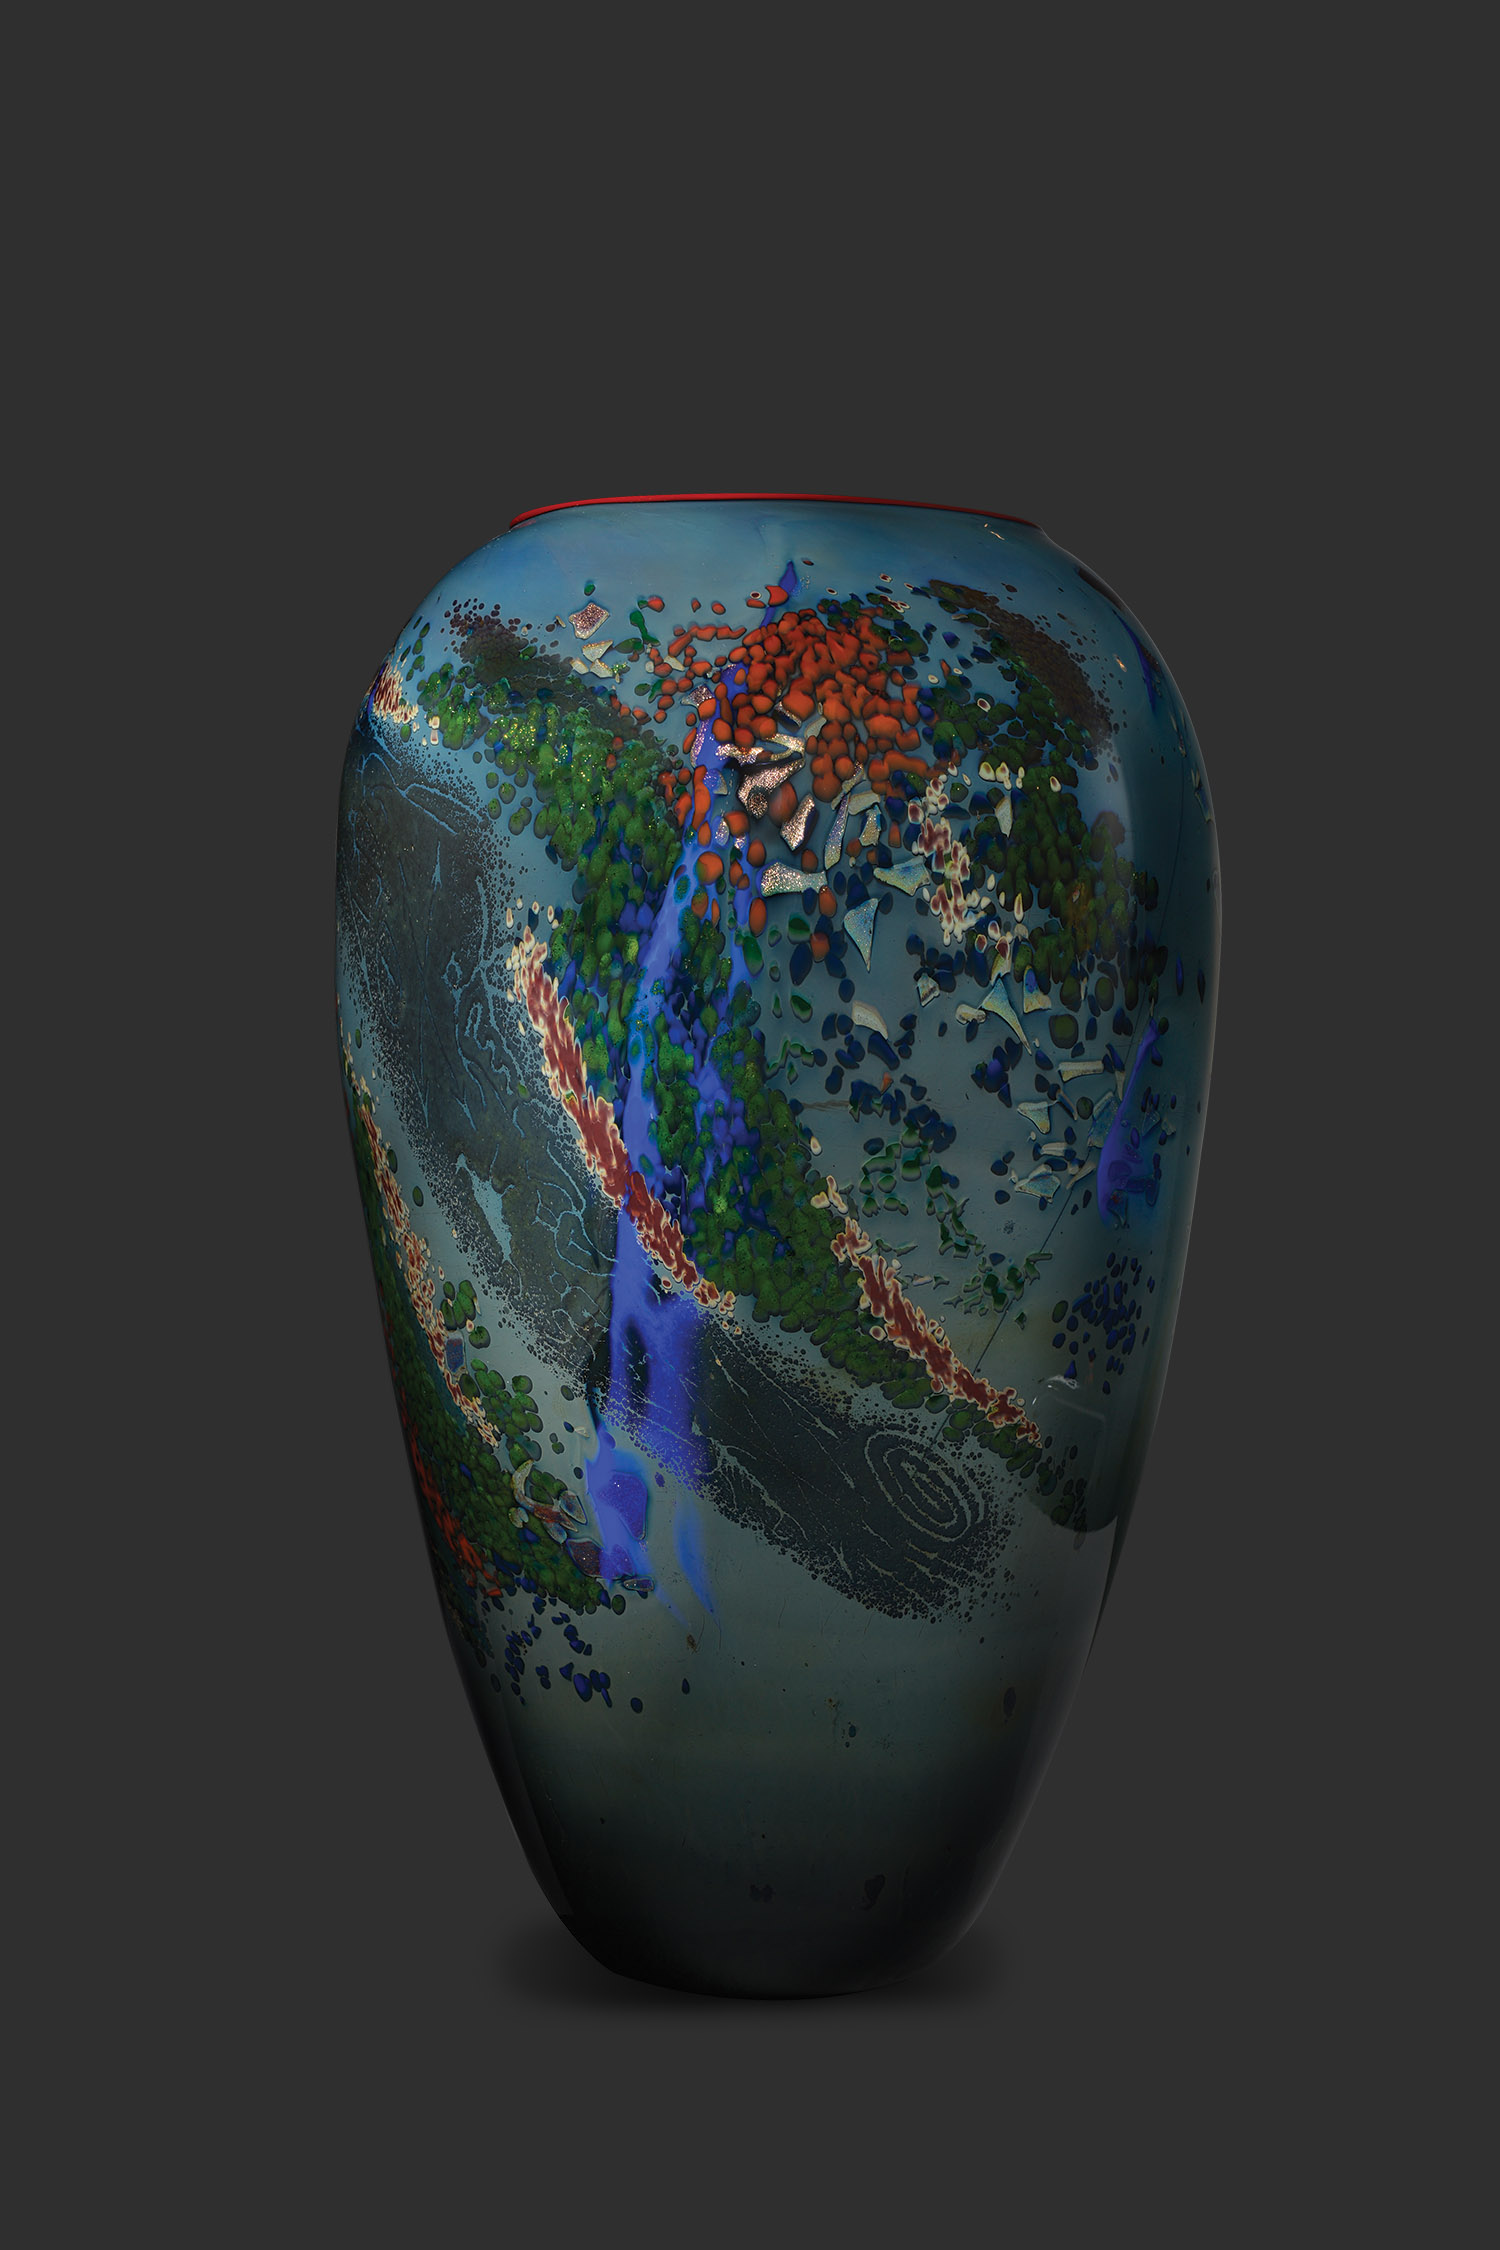 auction kicks off habatat galleries big annual event outside william morris web drawing vessel 1987